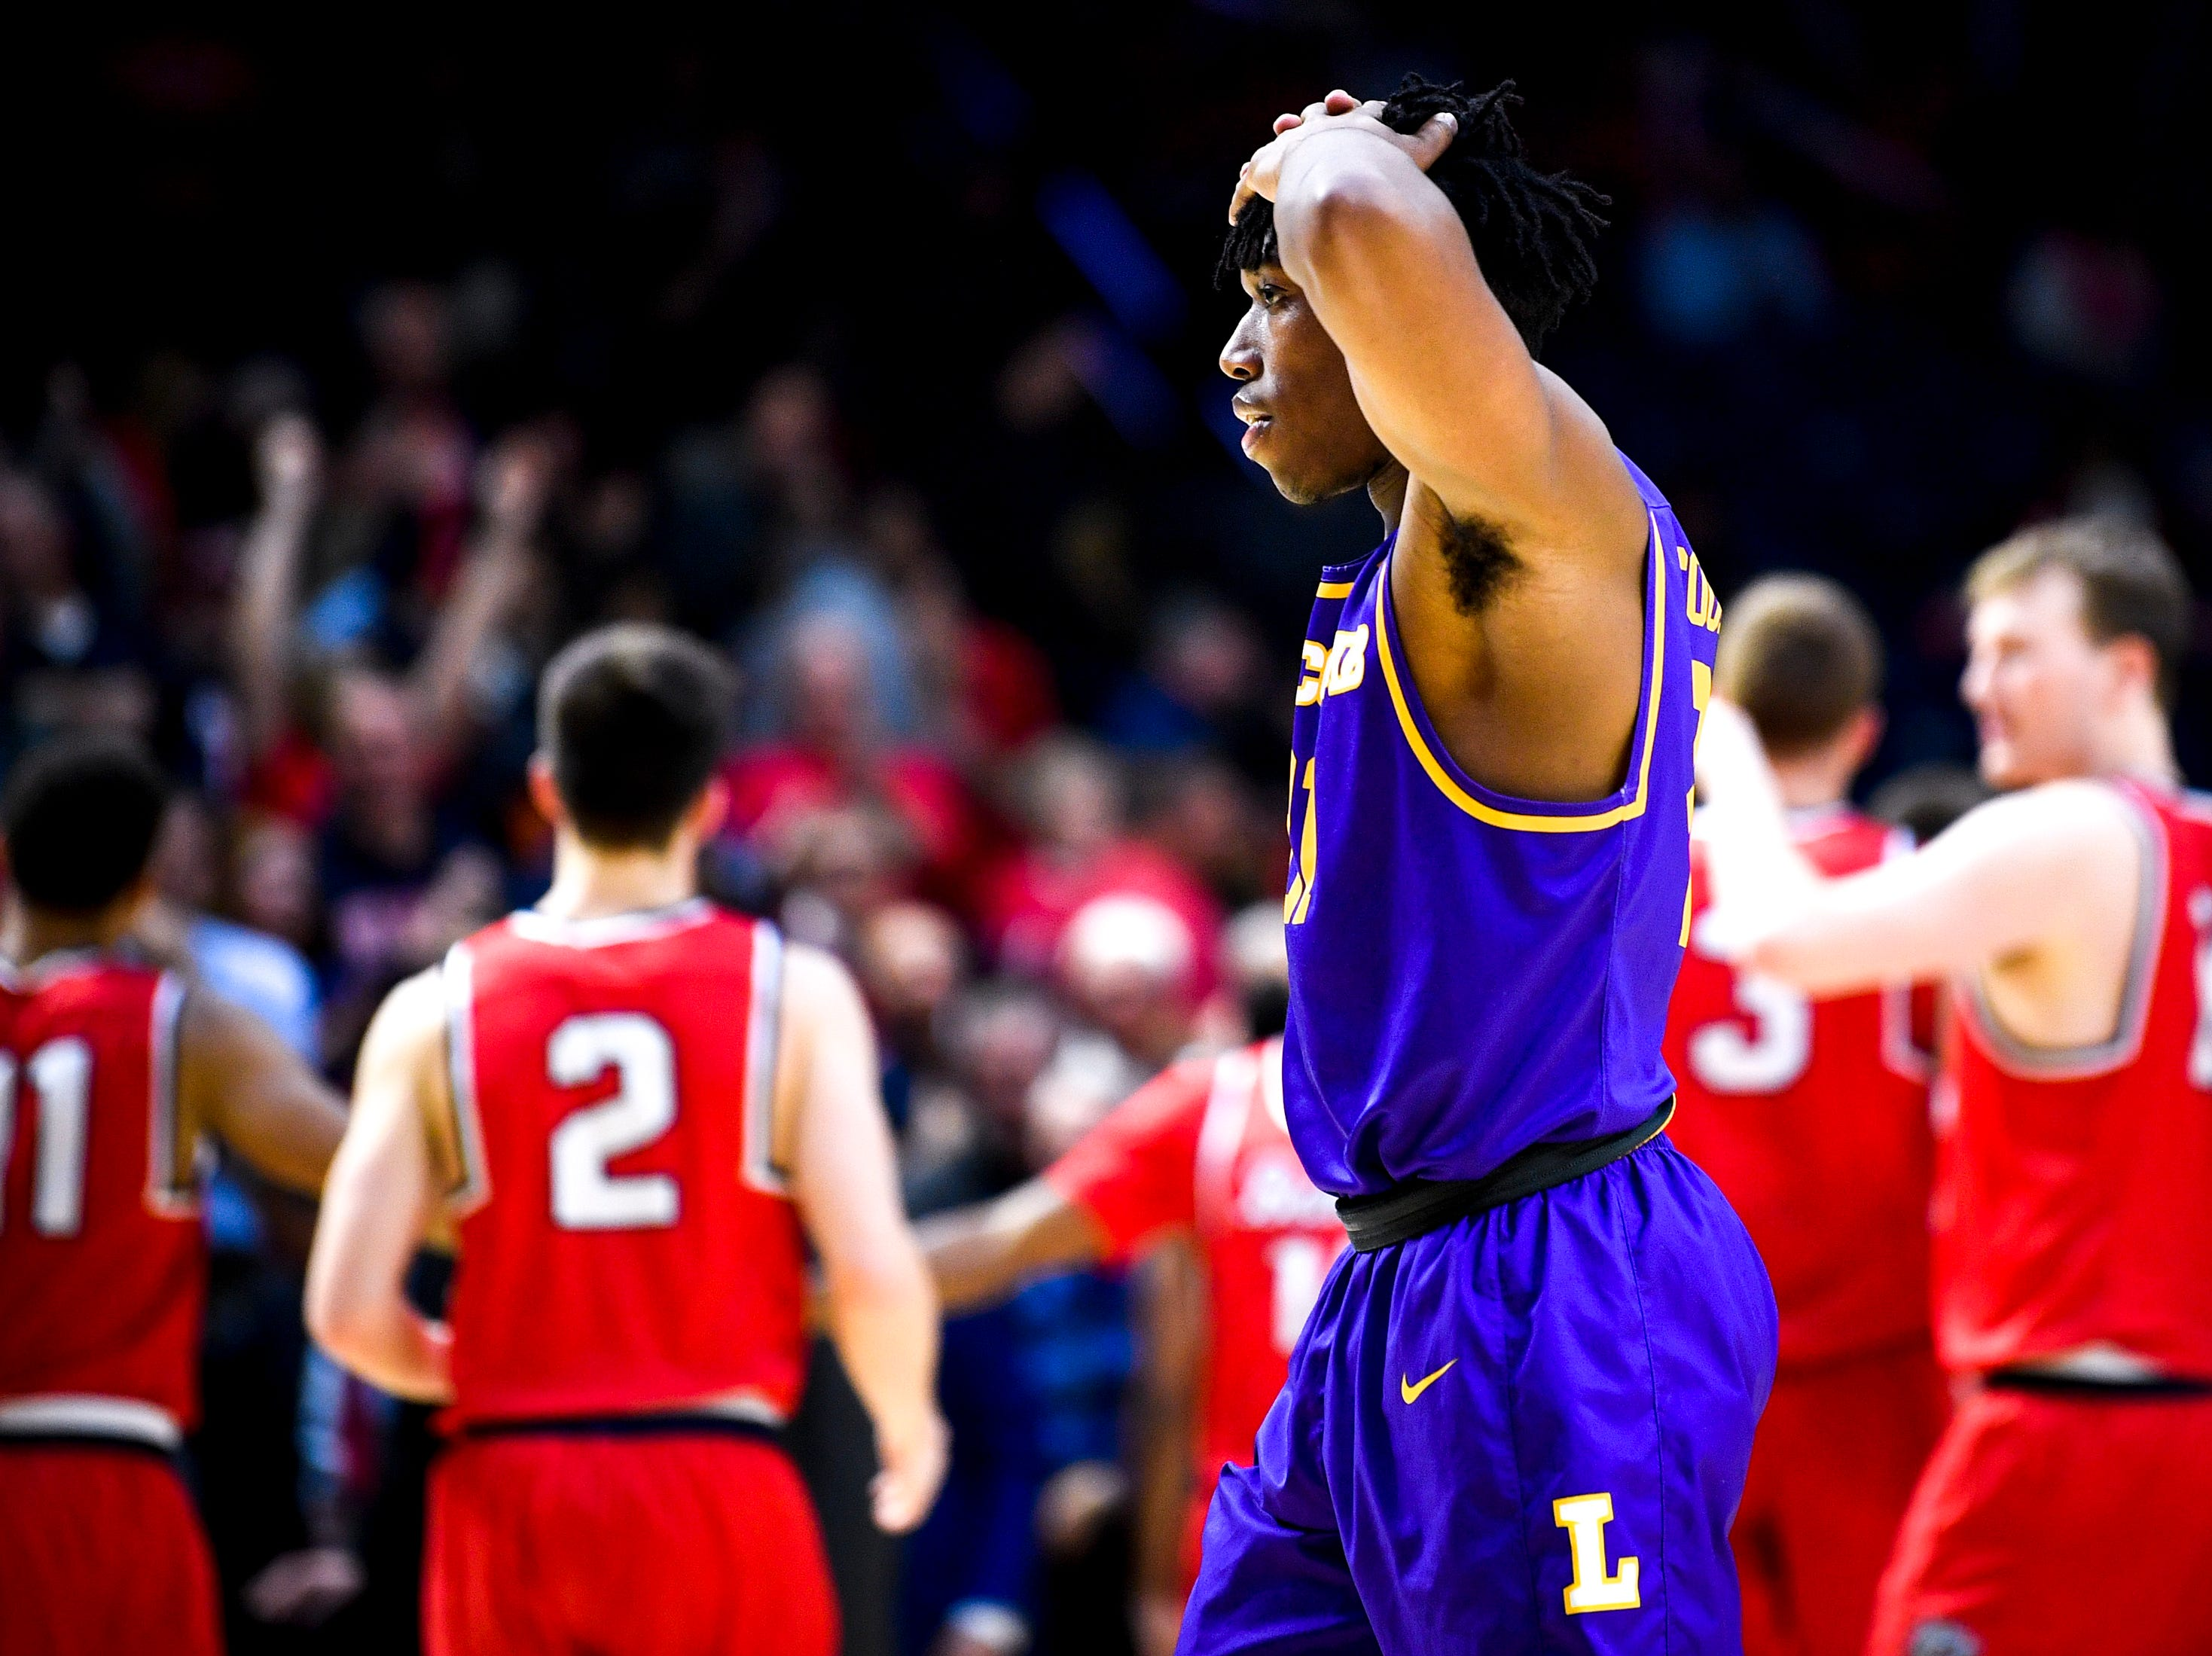 Lipscomb guard Kenny Cooper (21) reacts after Lipscomb's loss to Belmont at the Curb Event Center in Nashville, Tenn., Tuesday, Dec. 4, 2018.